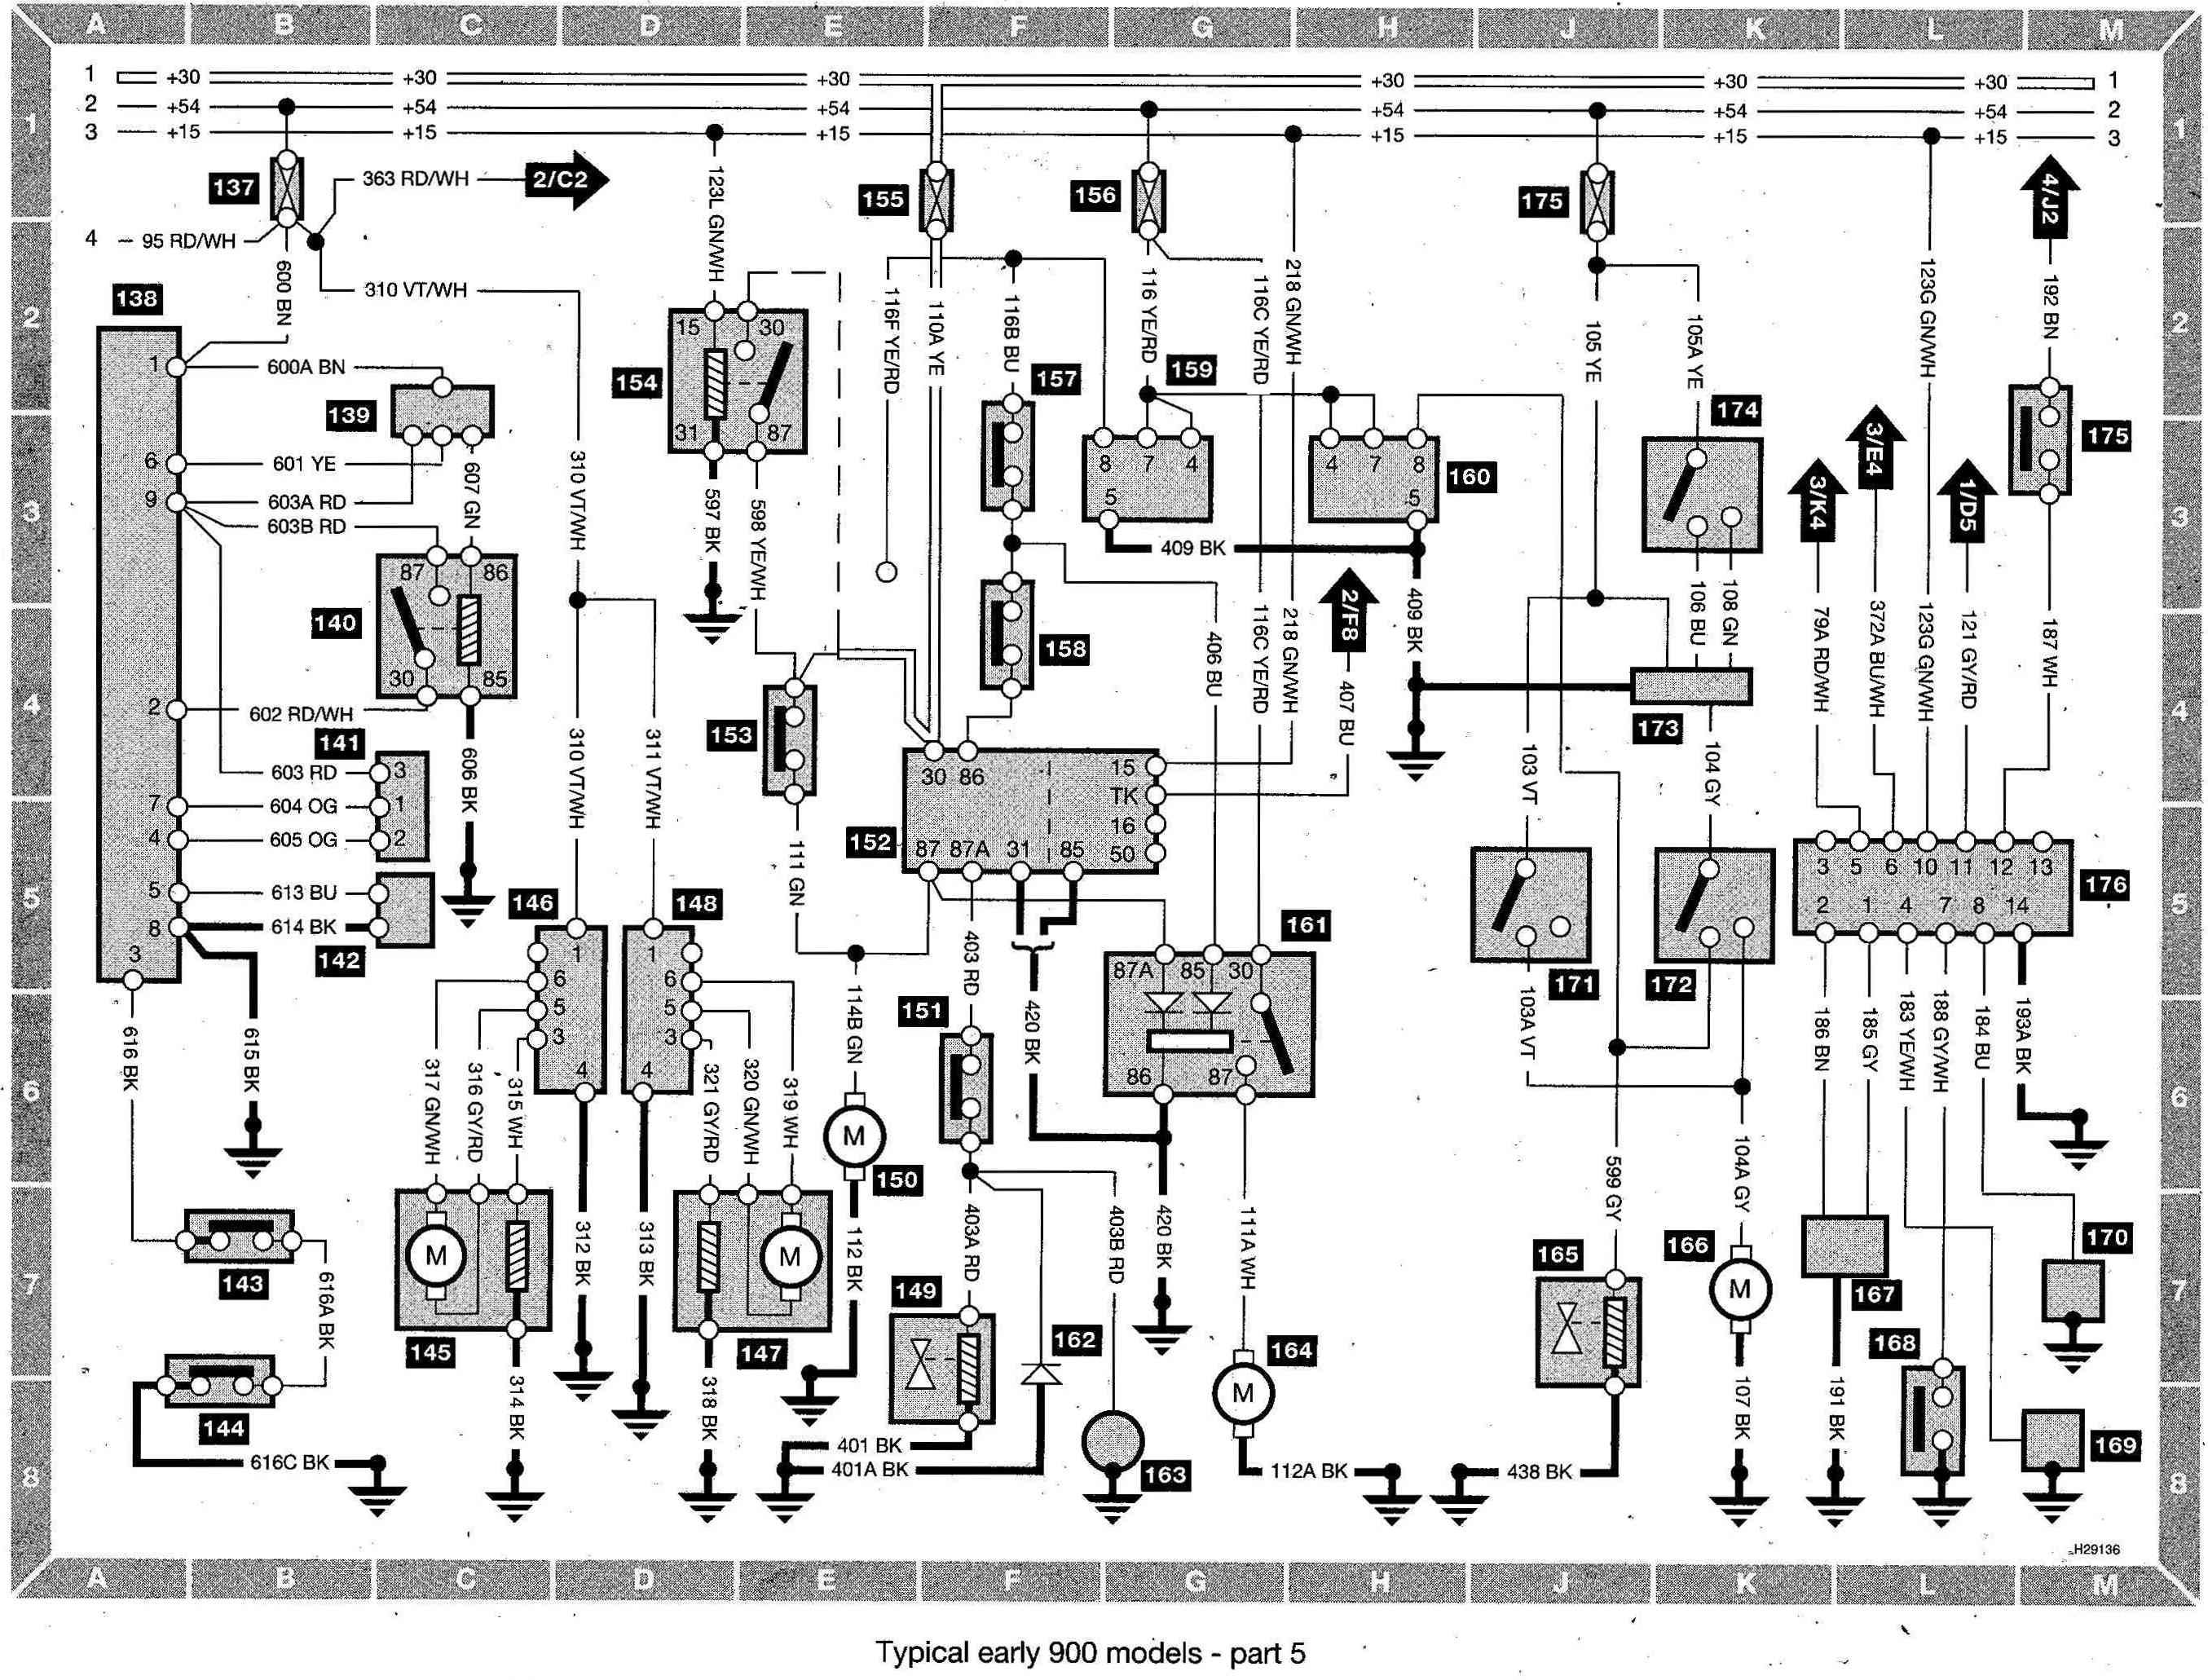 saab 9 3 stereo wiring diagram trailer brake controller 7 way harness free engine image for user